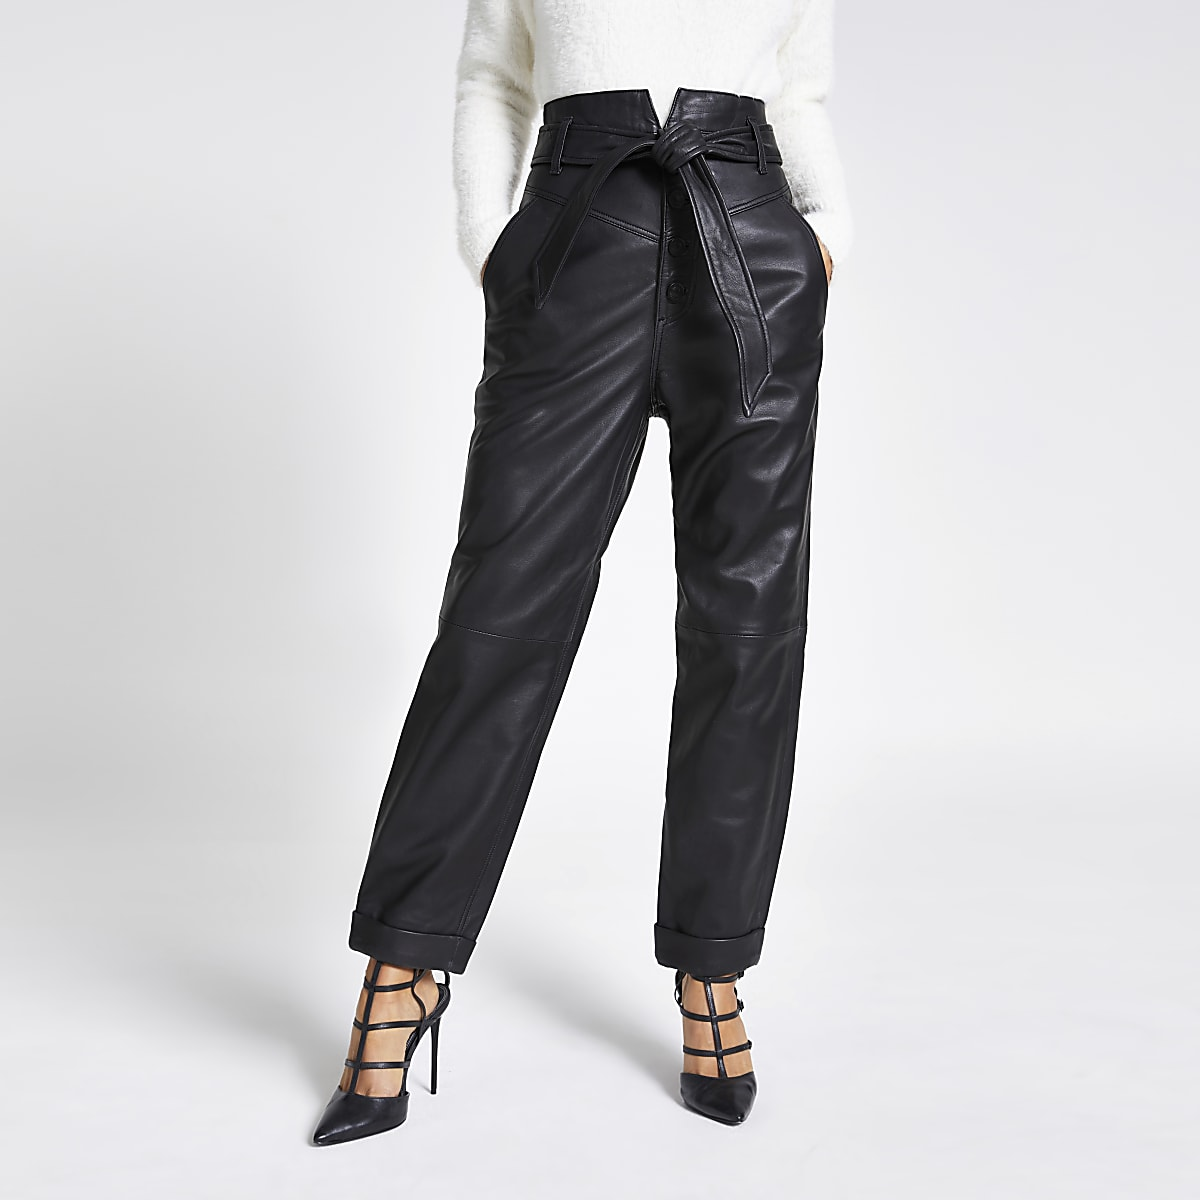 Black leather tie belted peg trousers